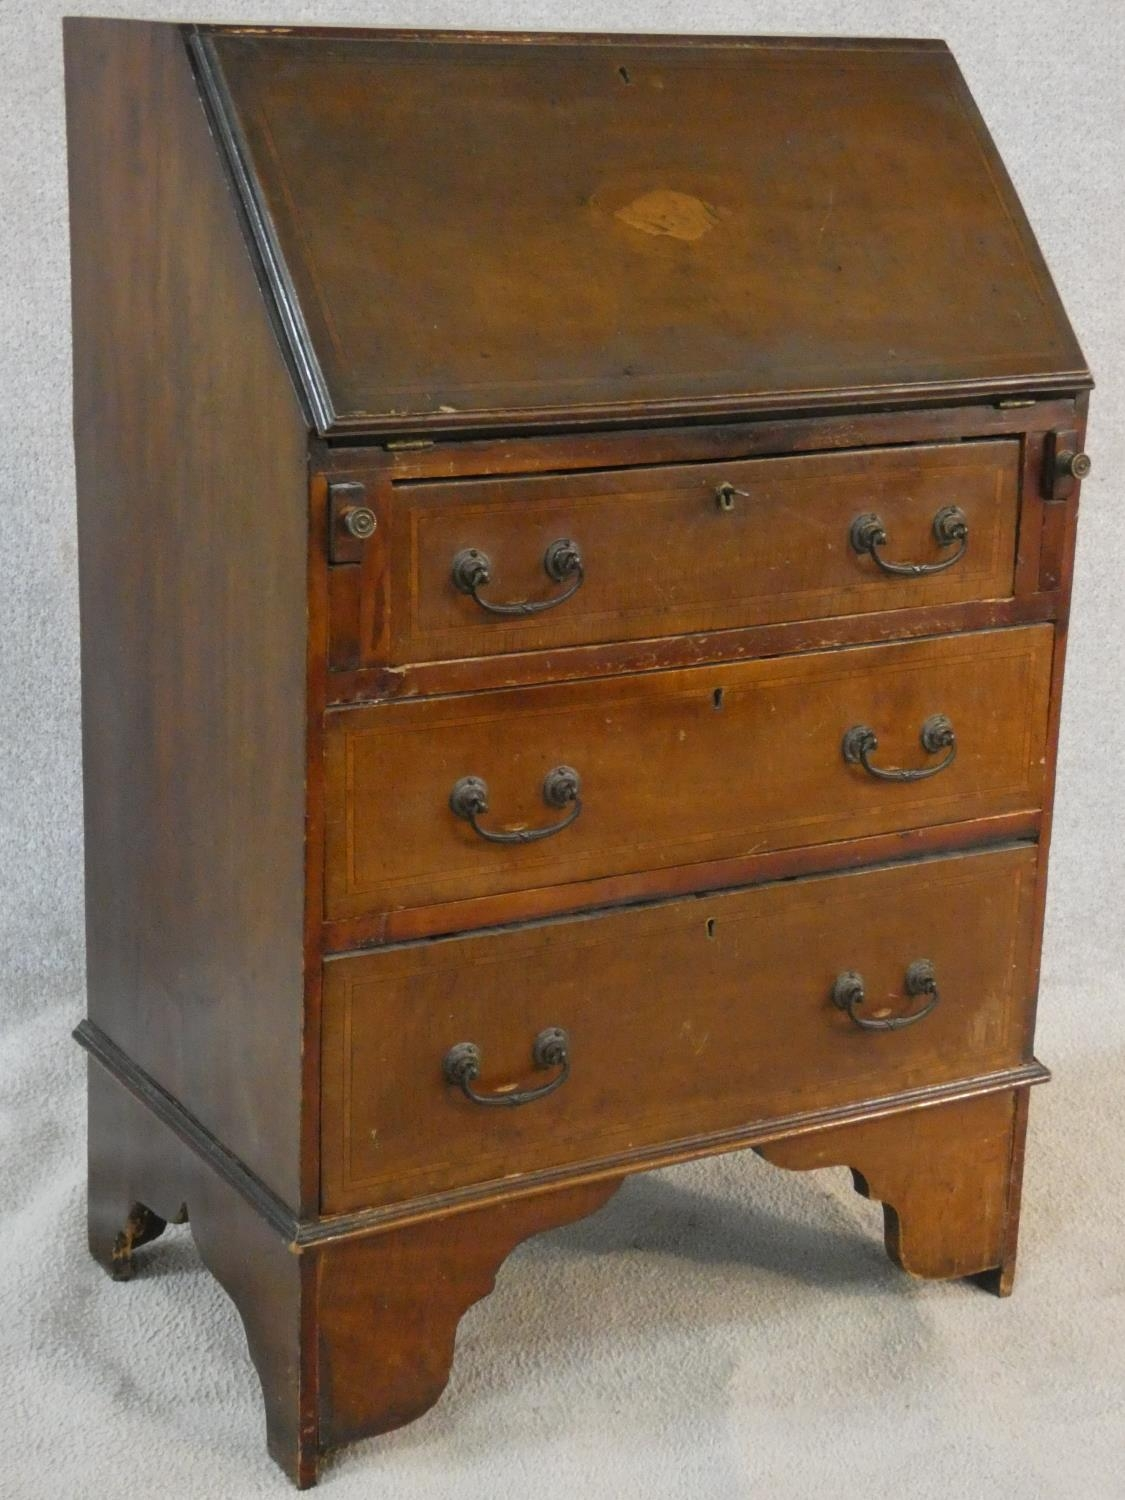 An Edwardian mahogany bureau with satinwood stringing and shell inlay to the frieze. H.95 W.61 D. - Image 2 of 6